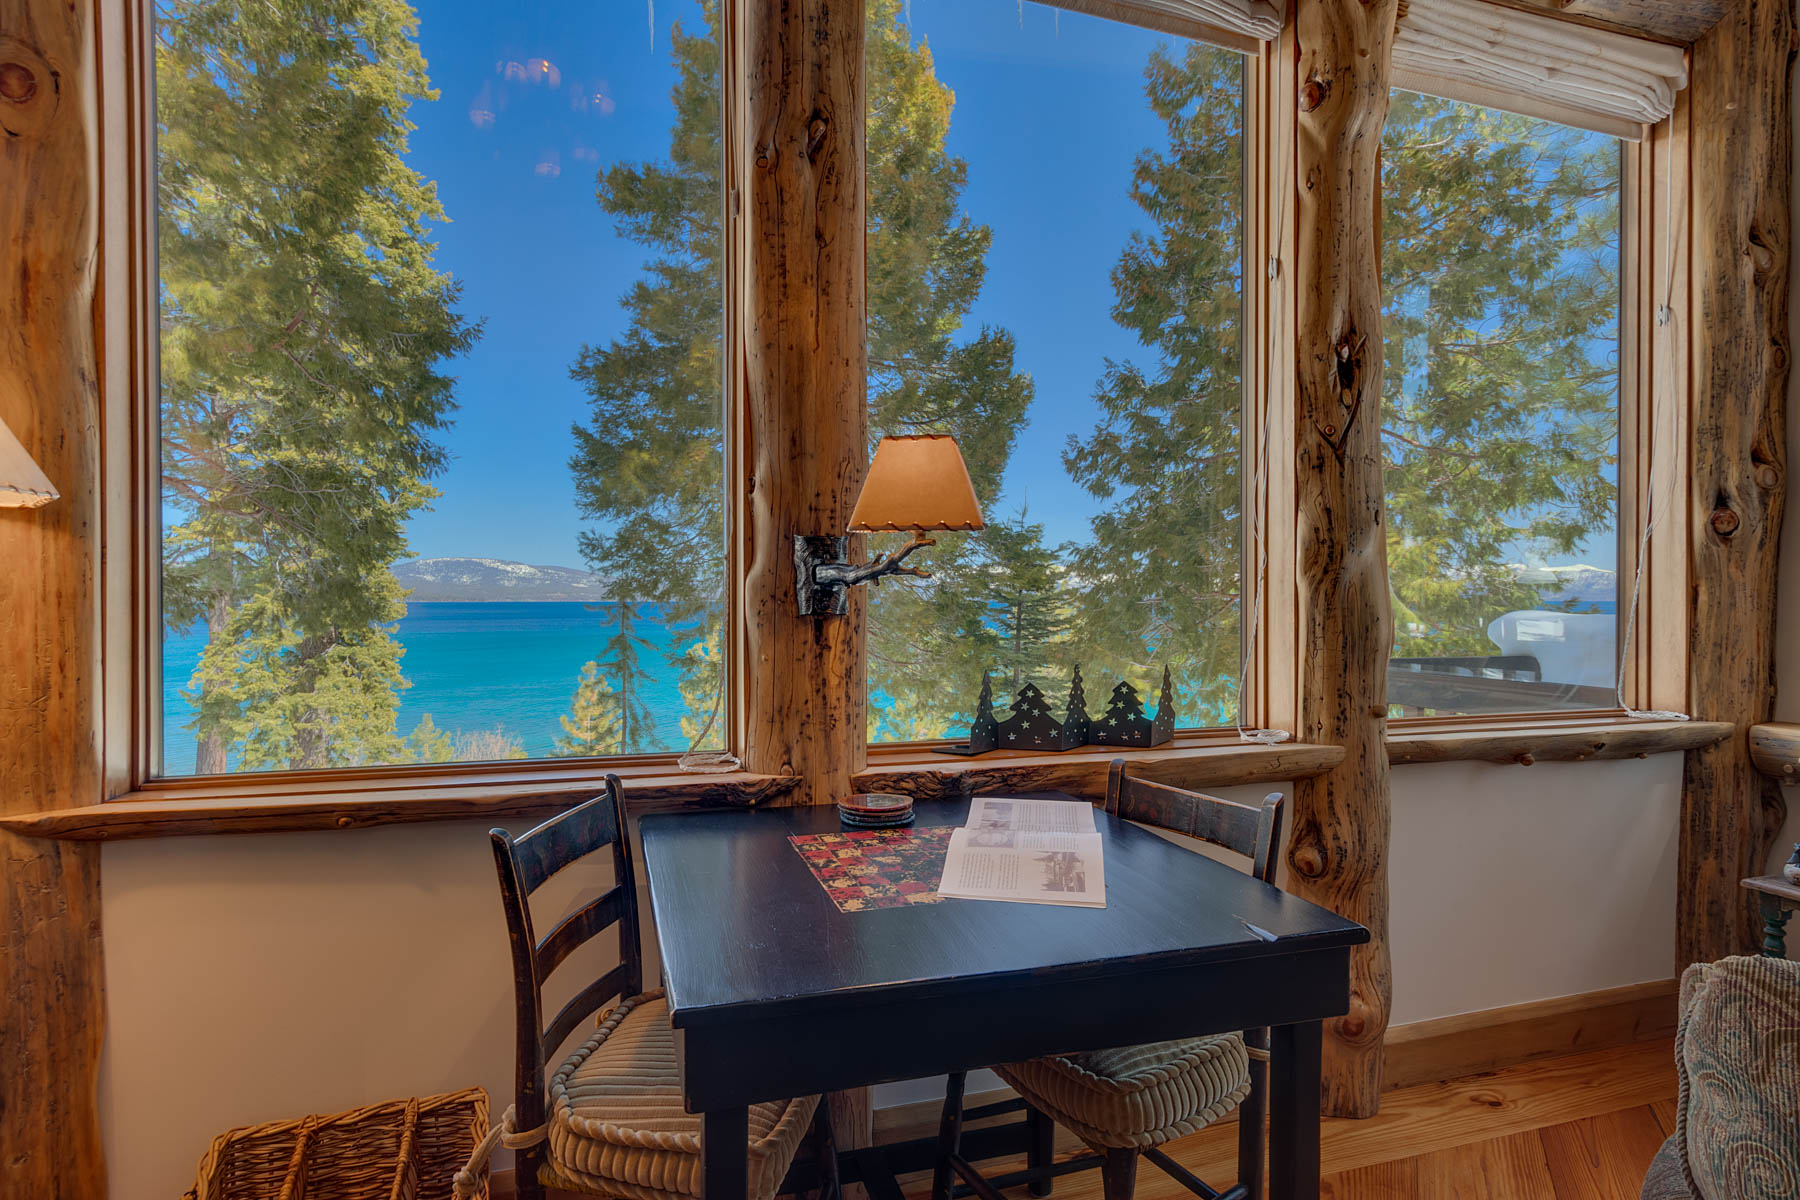 Additional photo for property listing at Beach Living at Its Finest 6400 West Lake Blvd #22 Homewood, California 96141 Estados Unidos